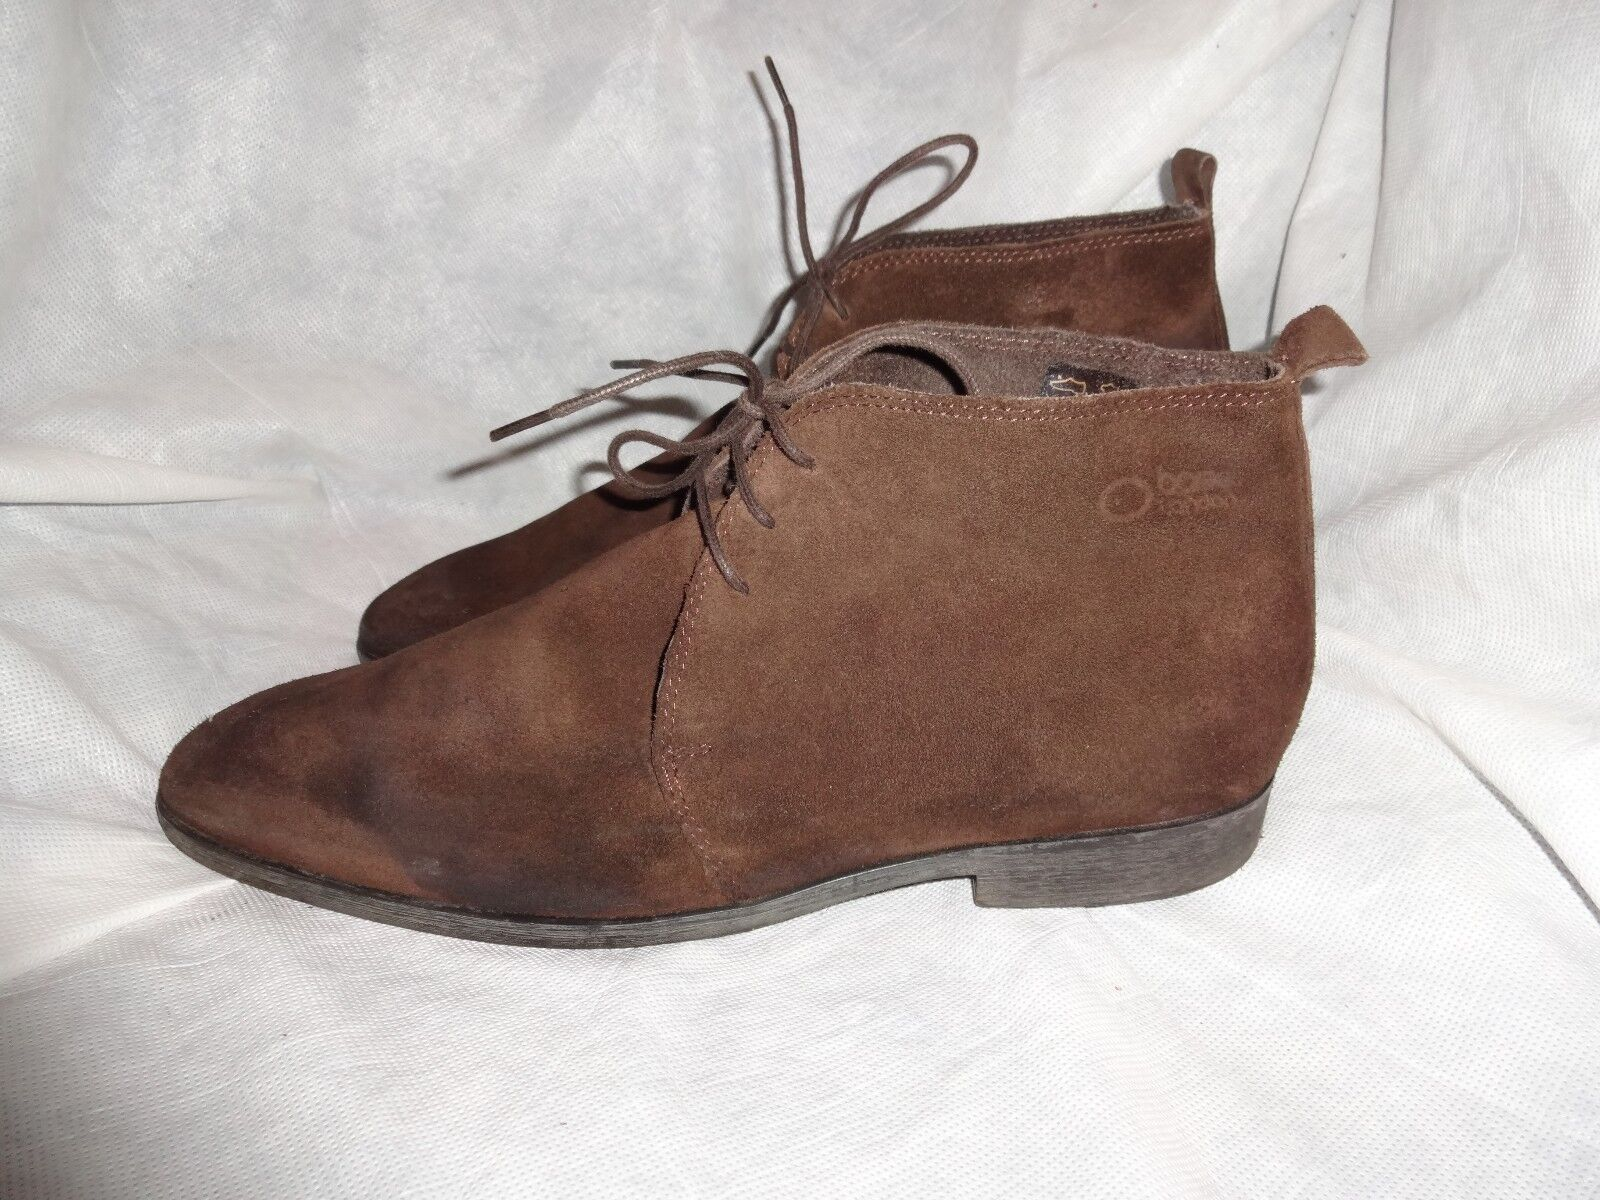 BASE LONDON MEN BROWN SUEDE LEATHER LACE UP BOOT SIZE UK 9 EU 43 VGC